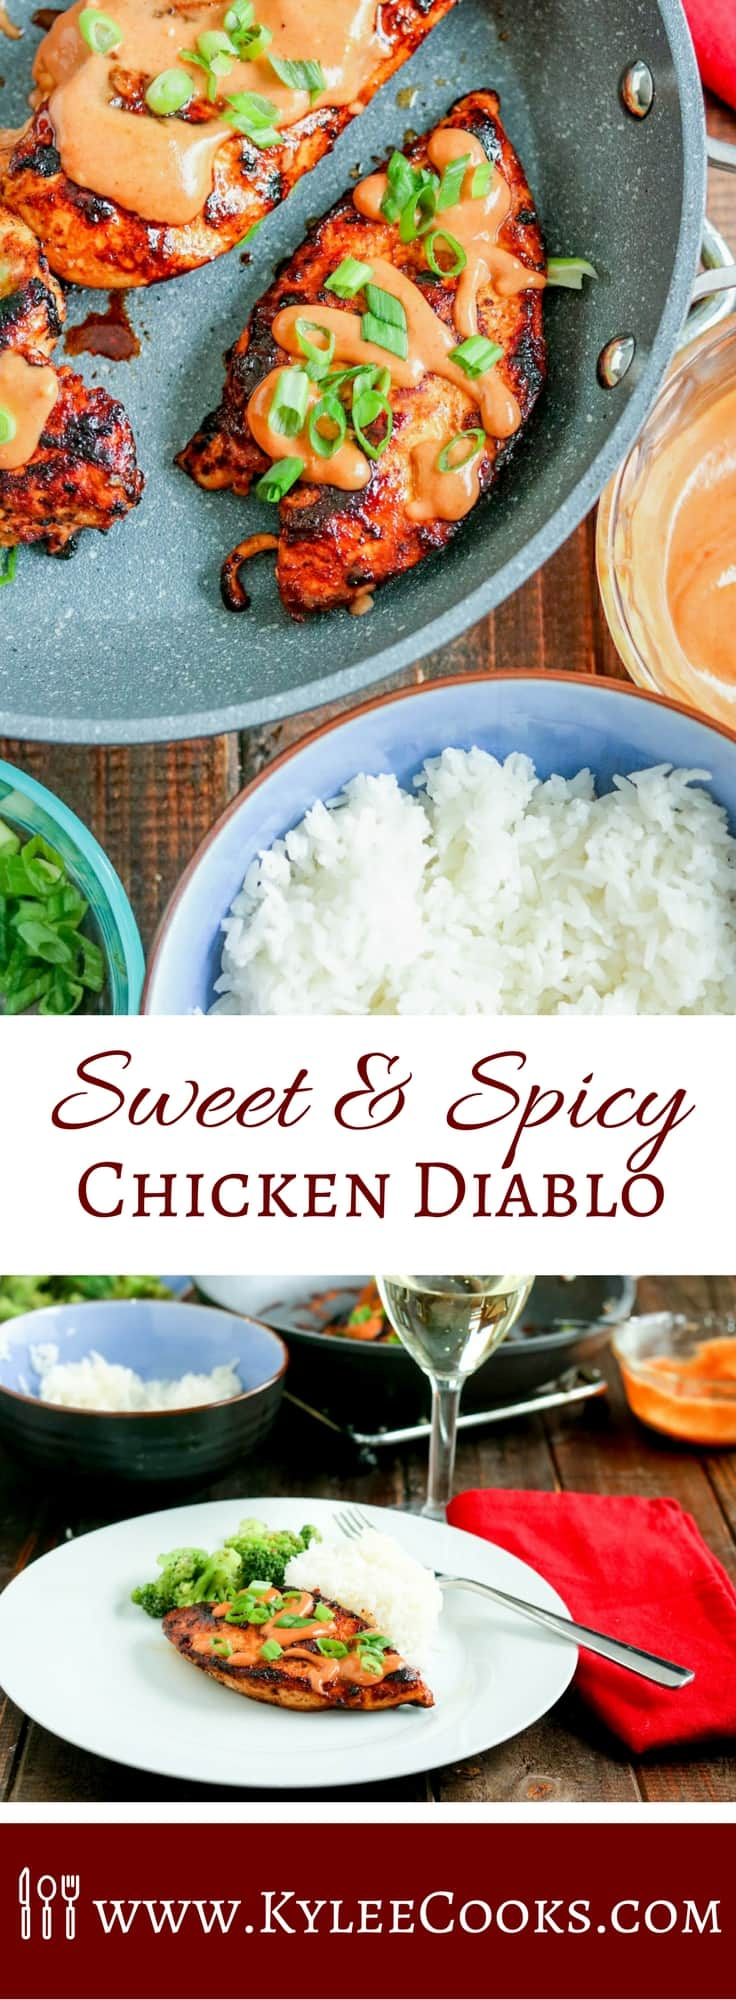 This spicy, sweet and creamy Chicken Diablo is a super easy dinner, that will satisfy the family. Ramp the heat up, or dial it down to your liking!